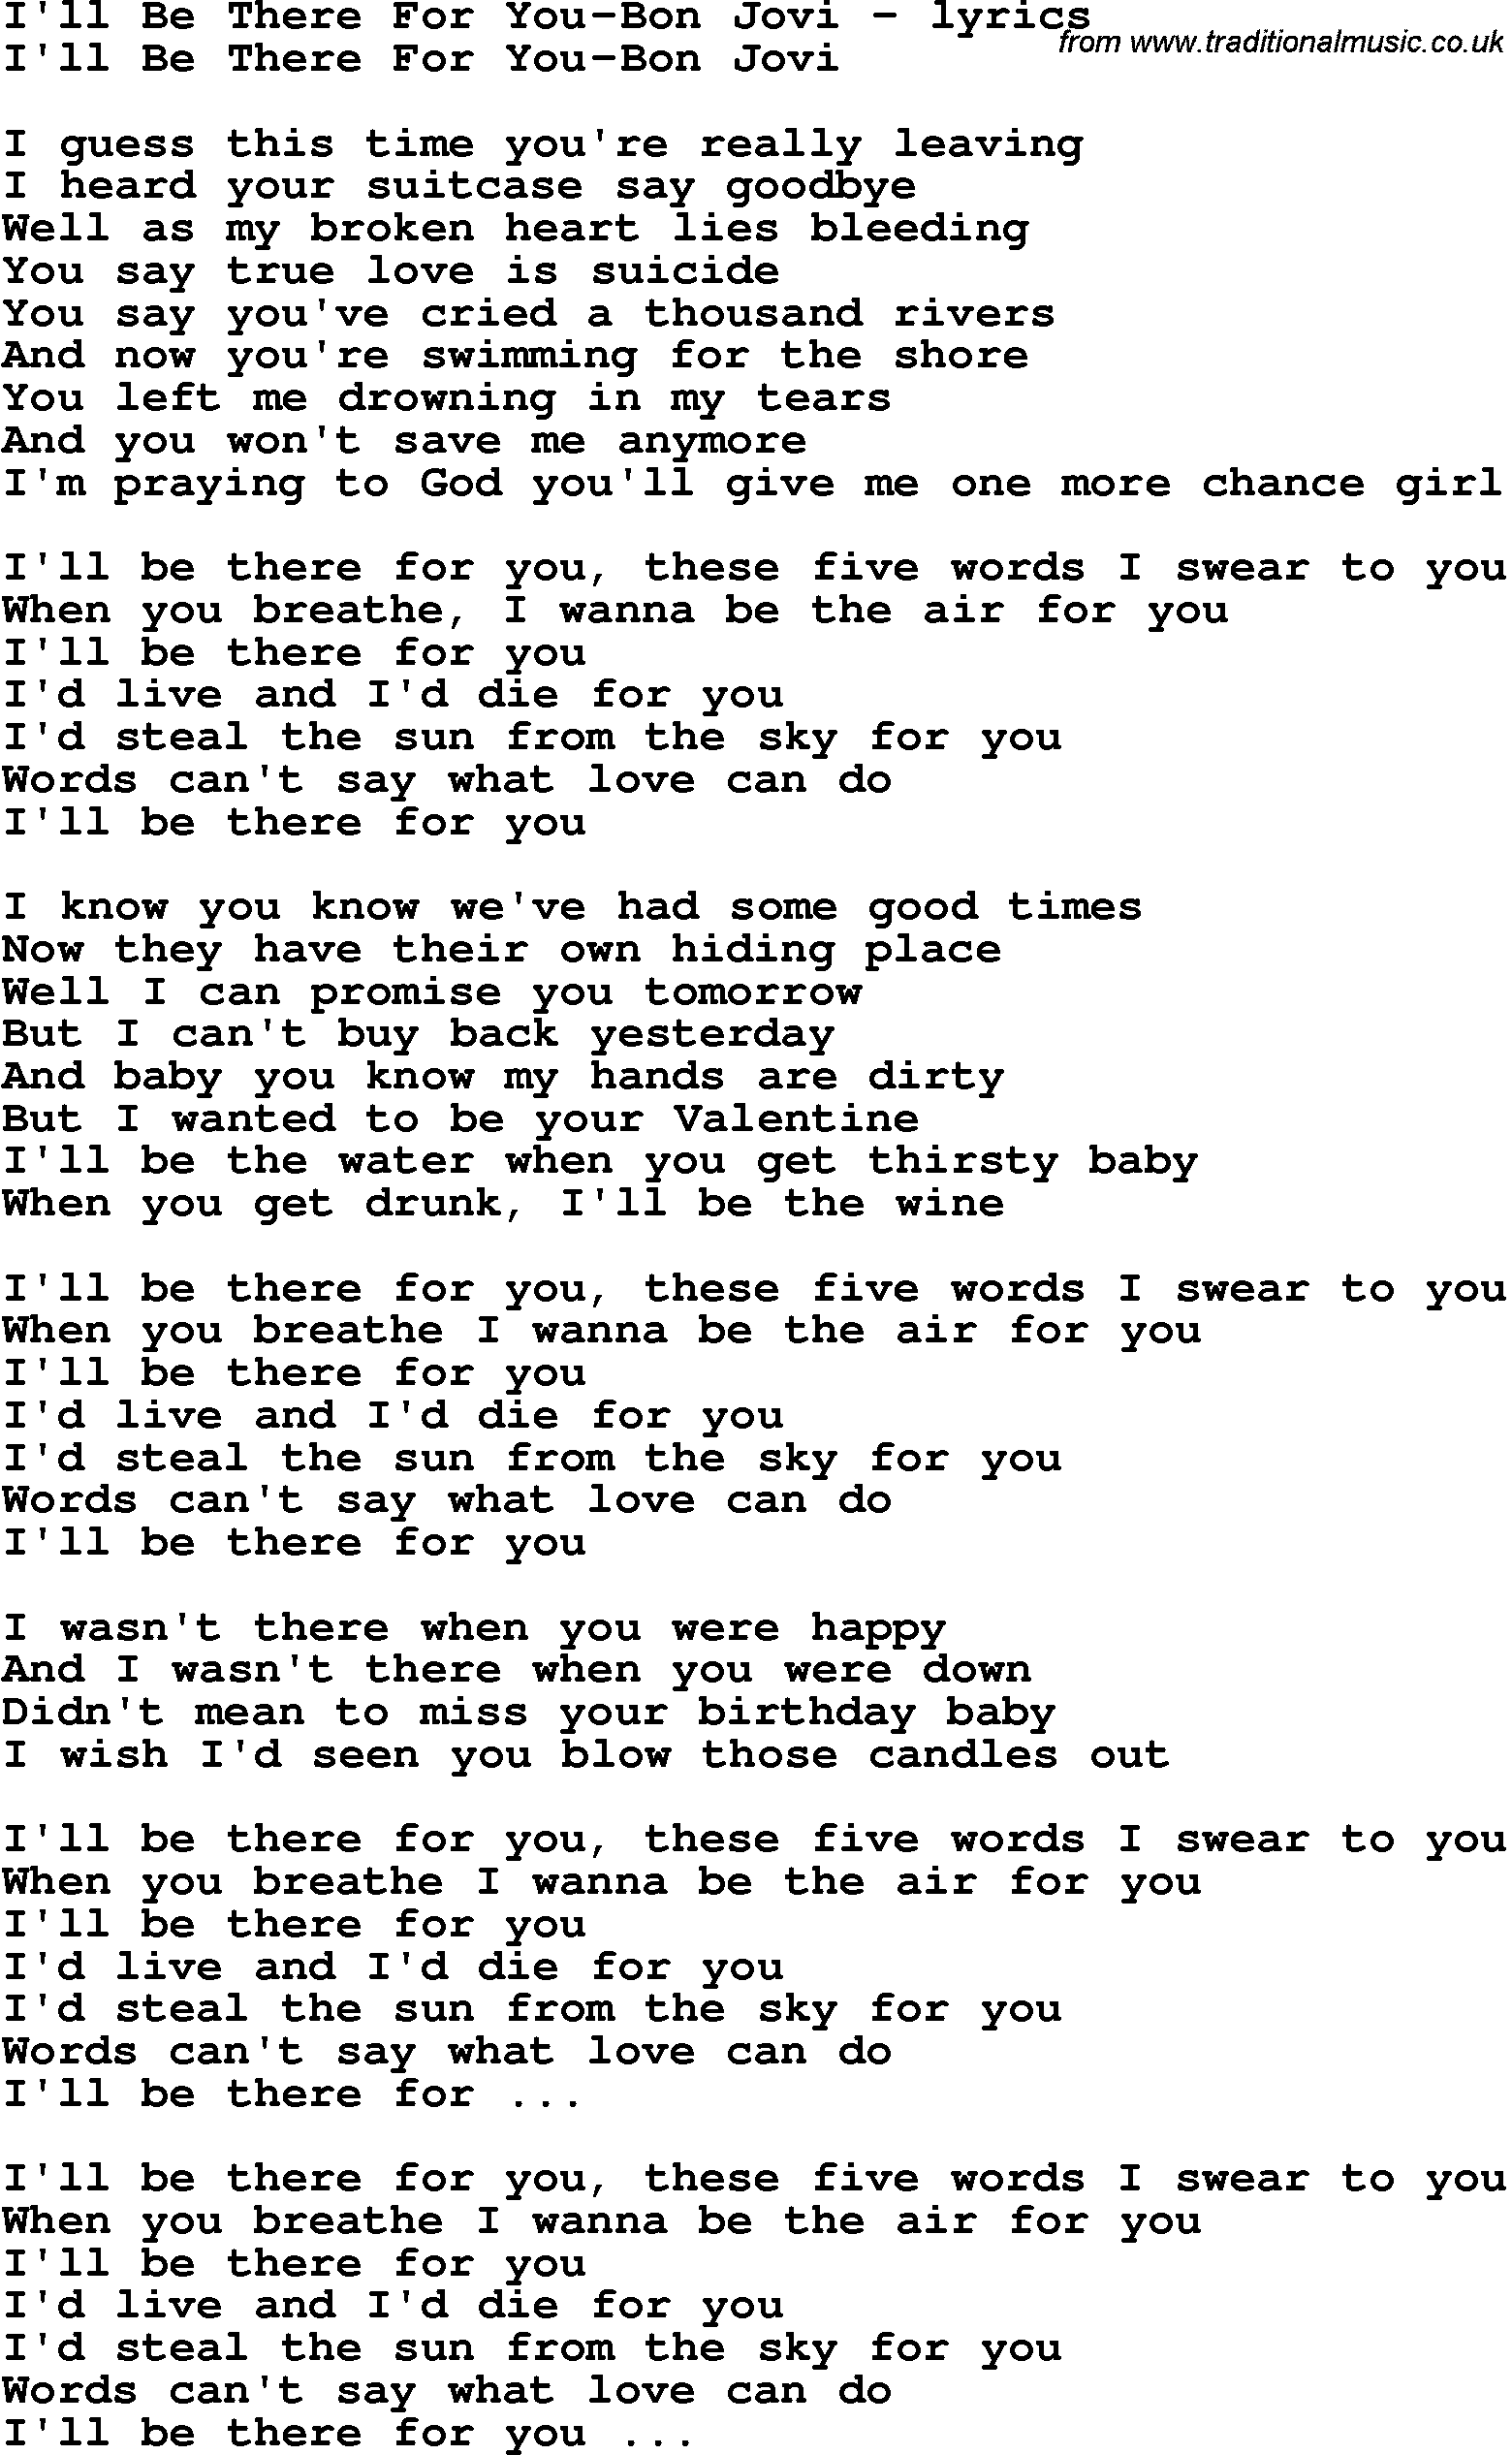 I will be i will be there for you lyrics